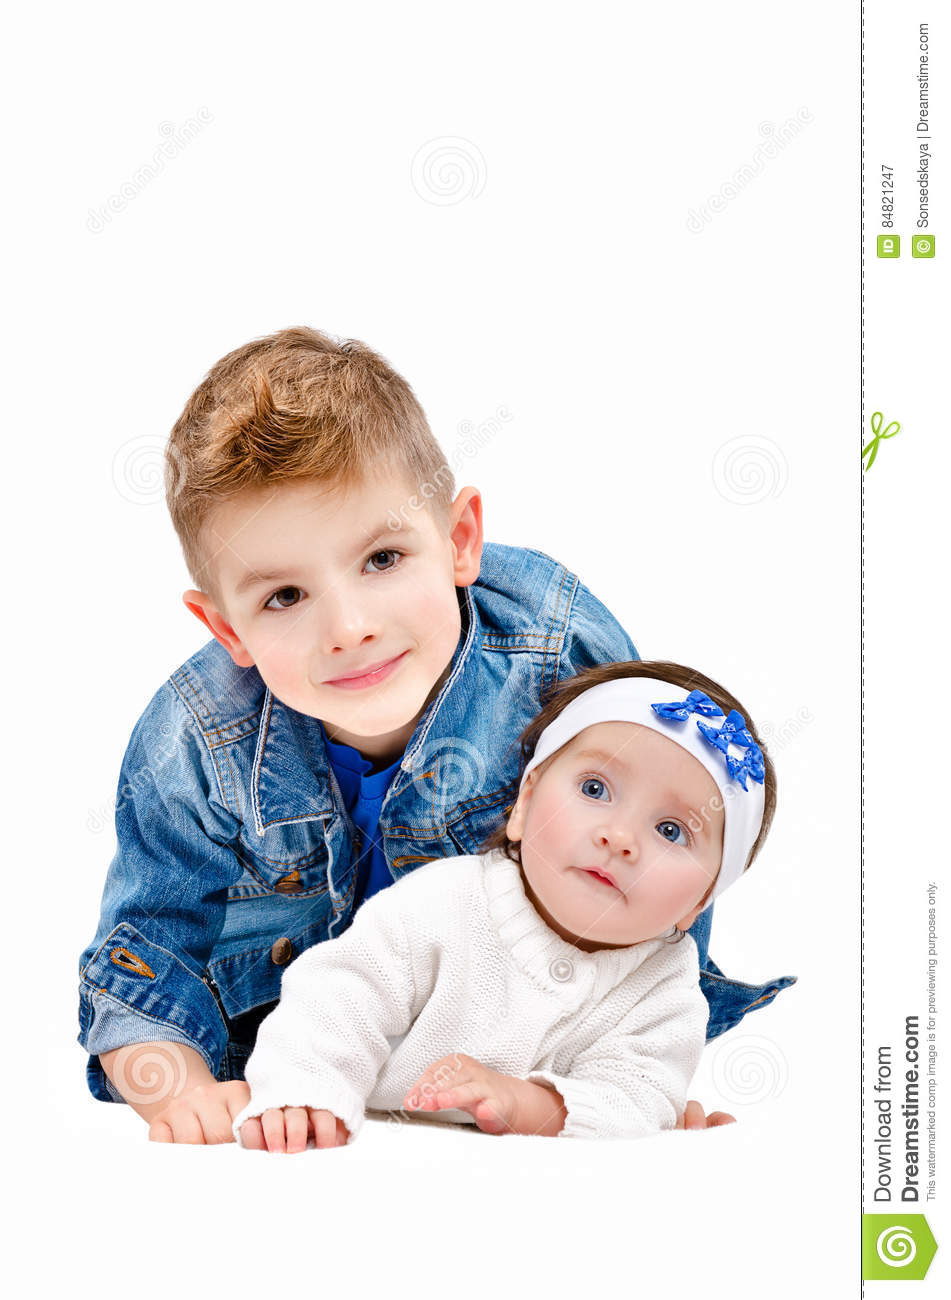 Toddler Kissing Newborn Elder Sister And Newborn Brother Royalty Free Stock Image